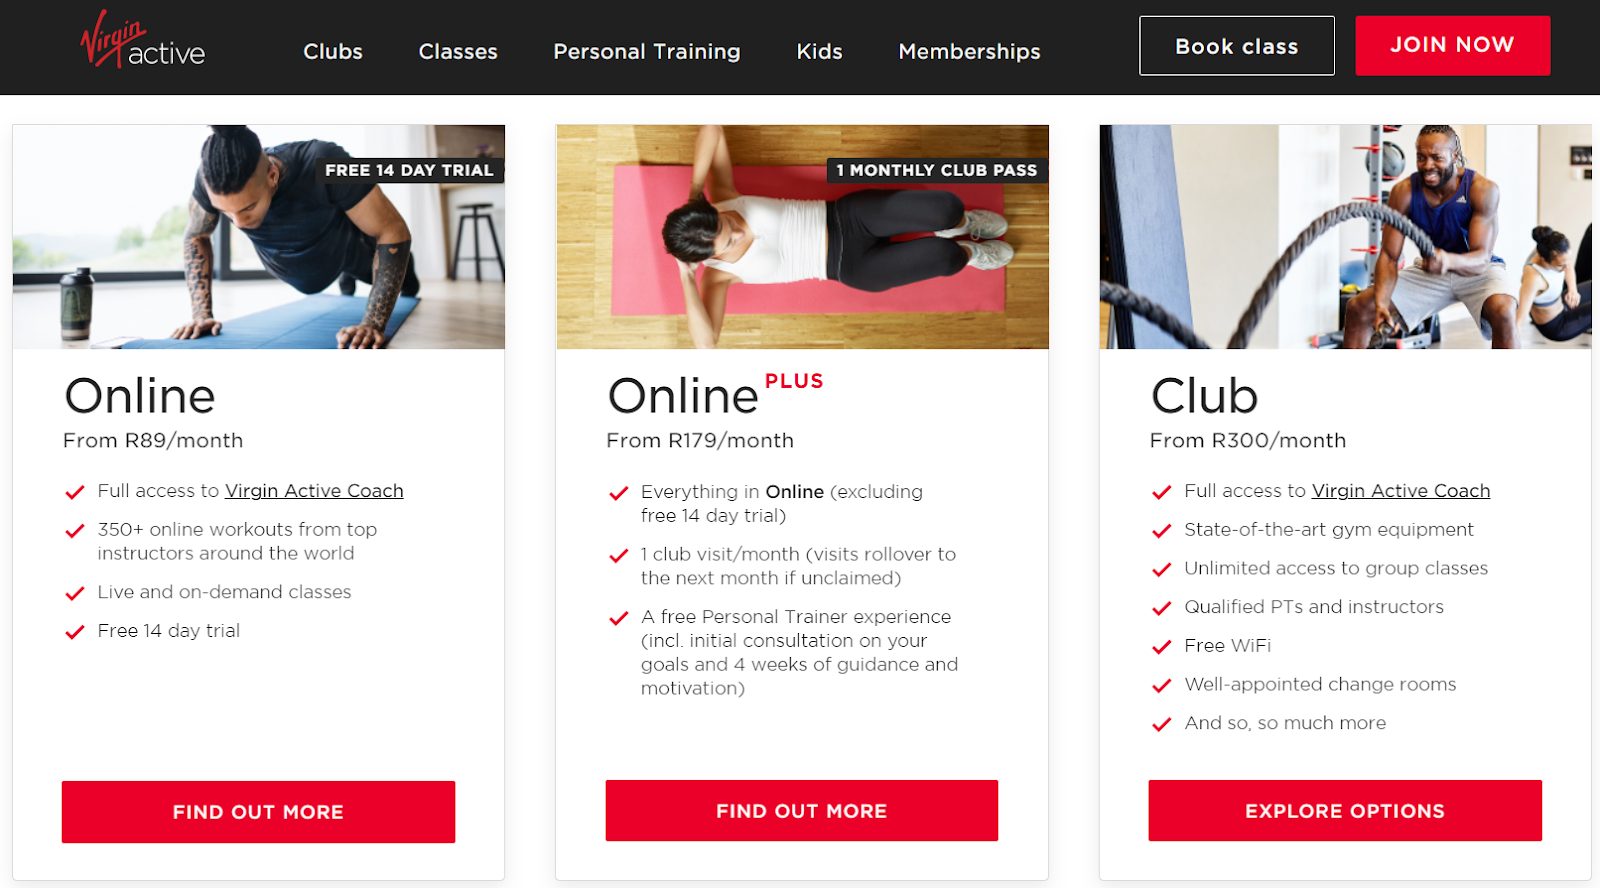 Screenshot of Virgin Active's new packages during COVID-19